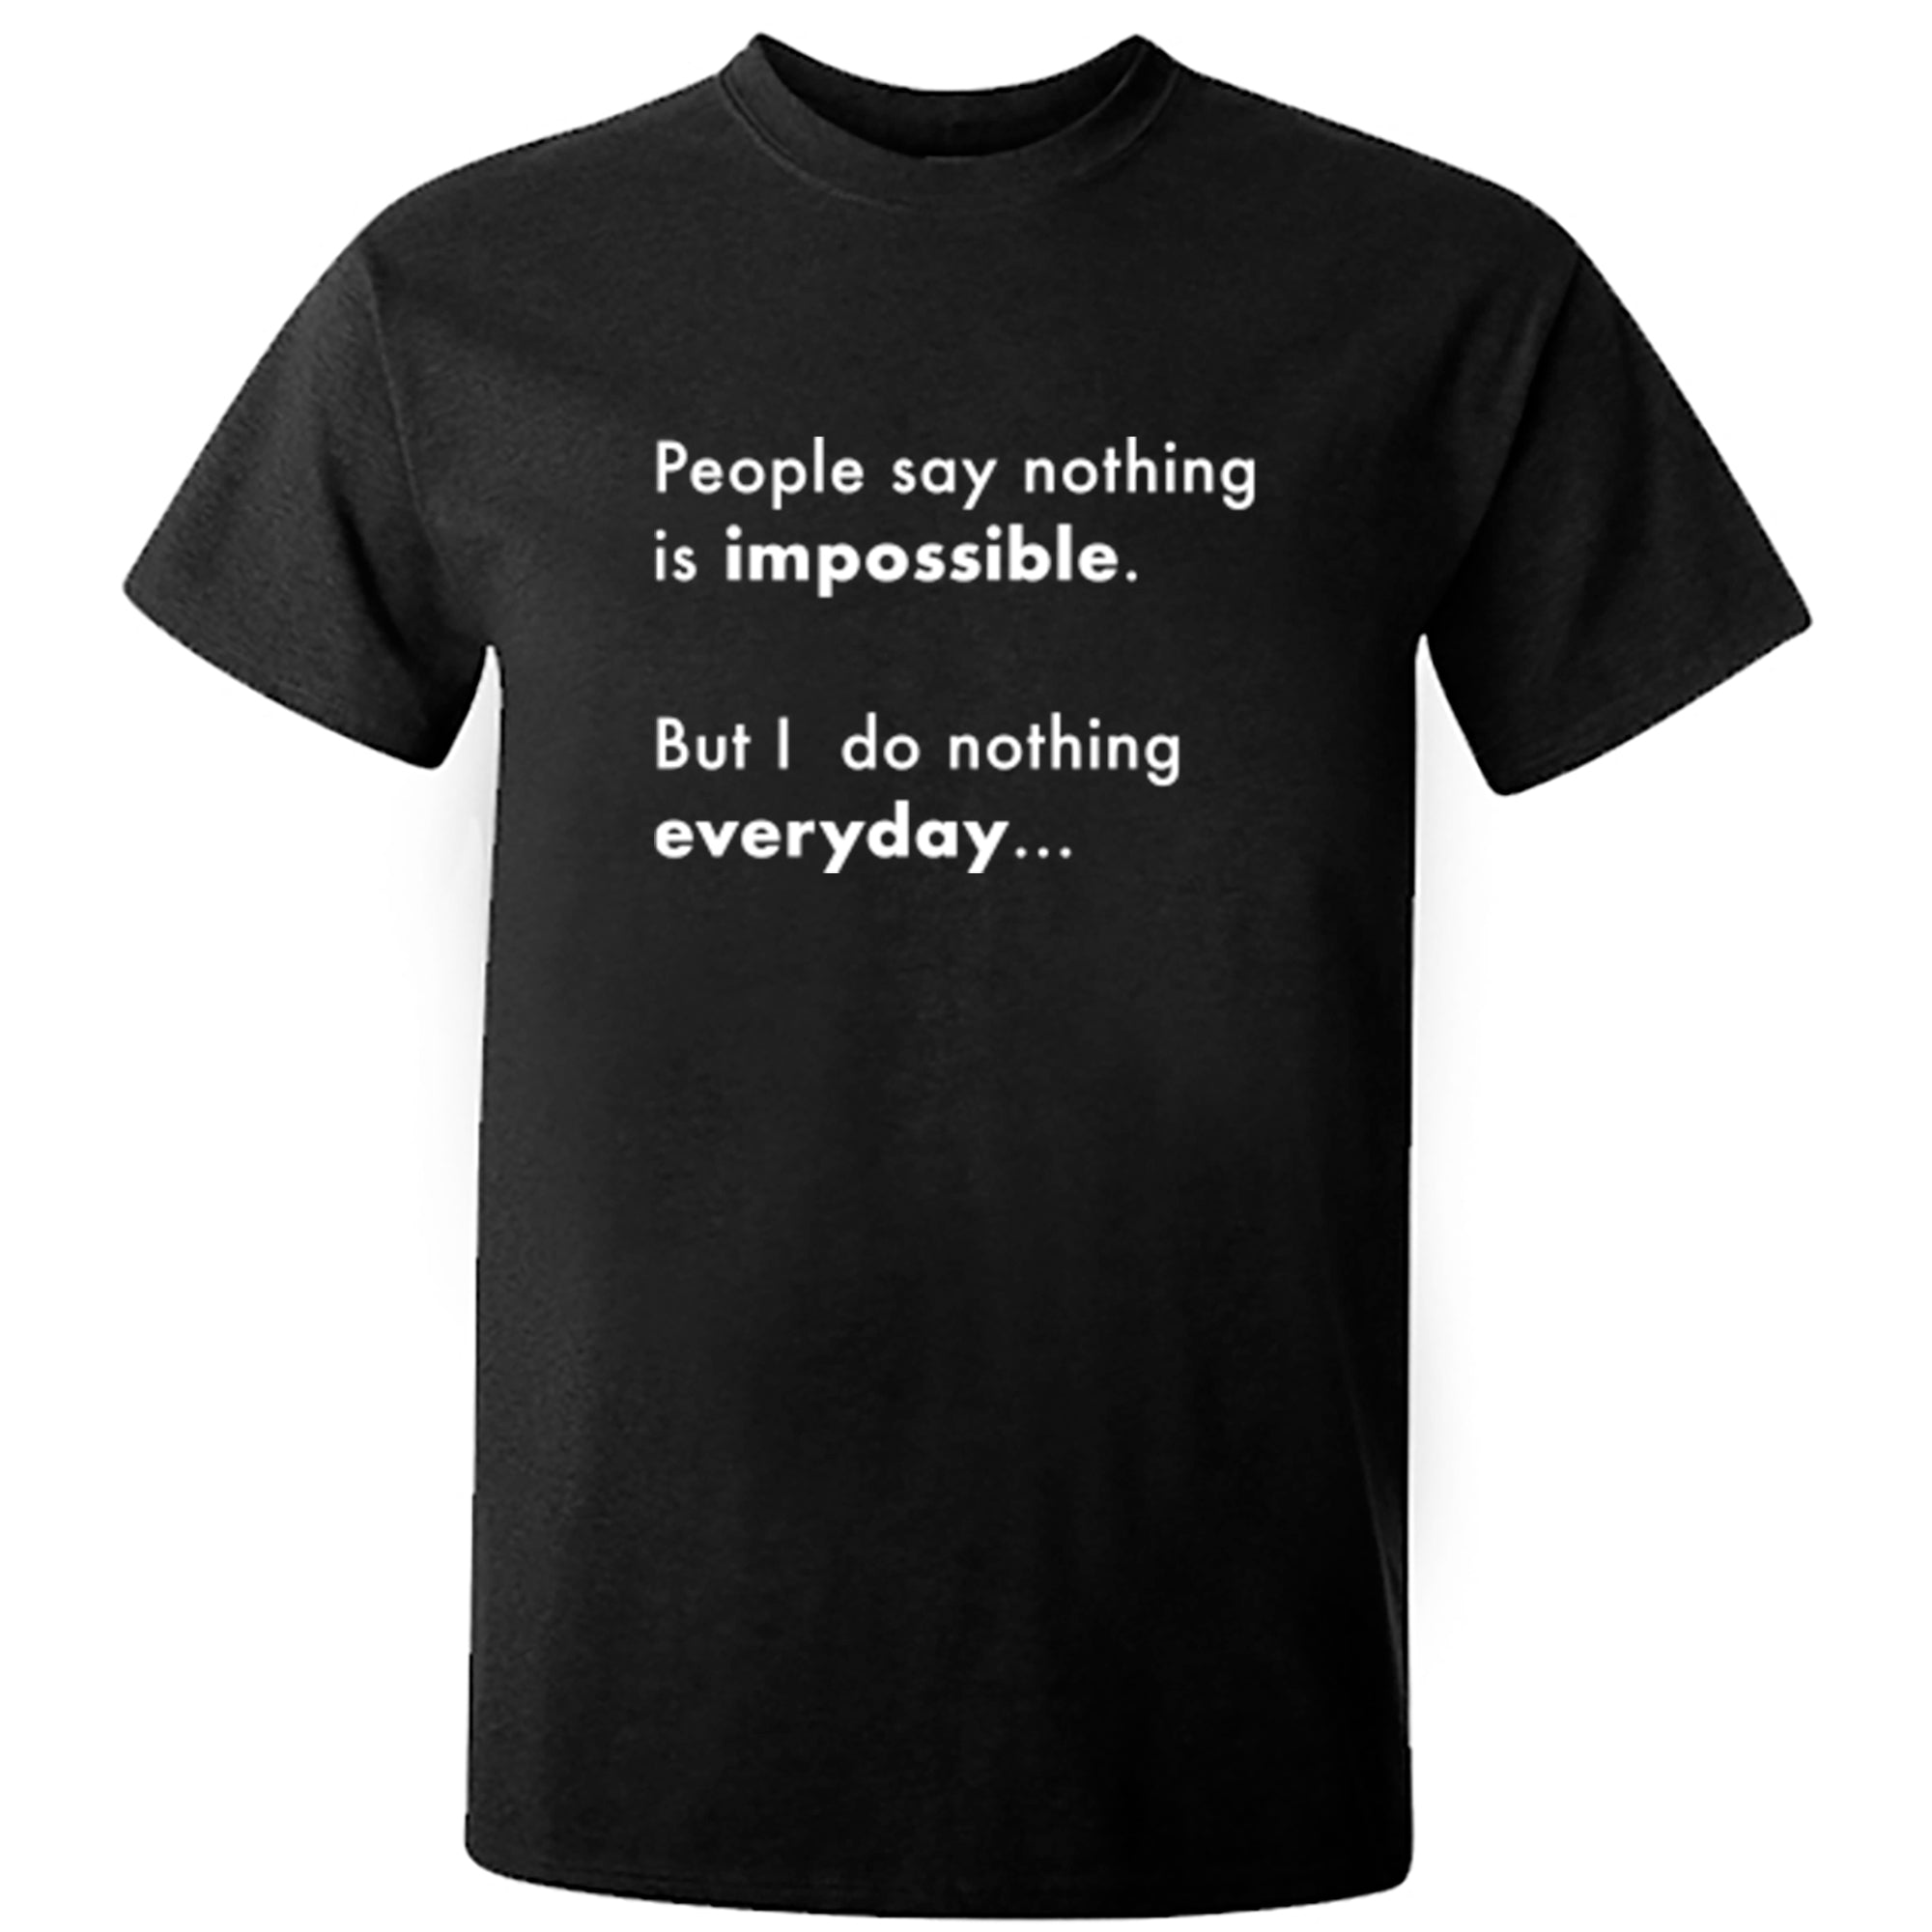 People Say Nothing Is Impossible, But I Do Nothing Everyday Unisex Fit T-Shirt A0071